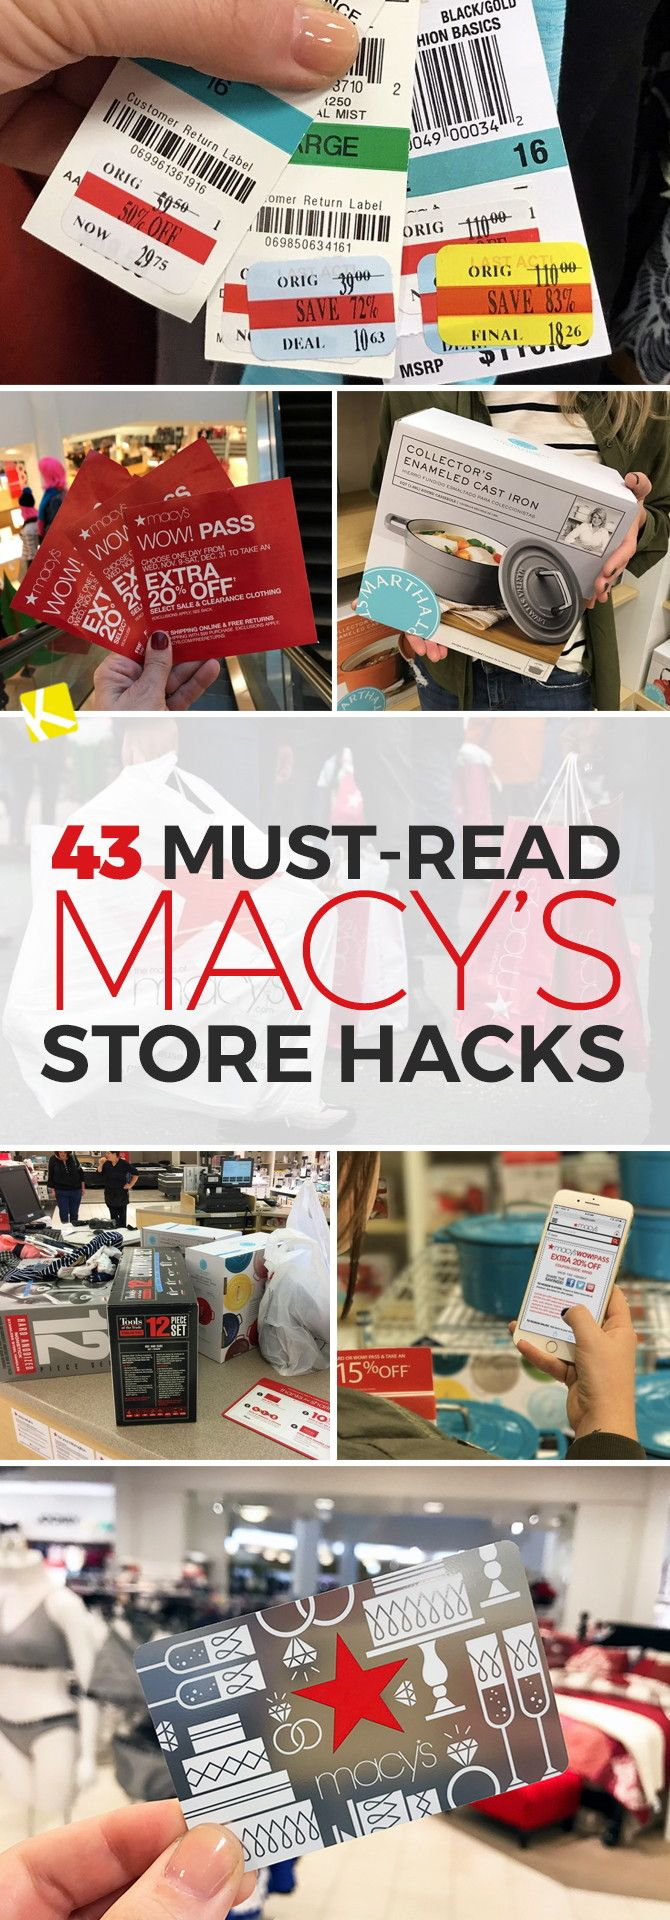 321 best couponing images on pinterest cowls saving money and all 43 must read macys store hacks fandeluxe Gallery